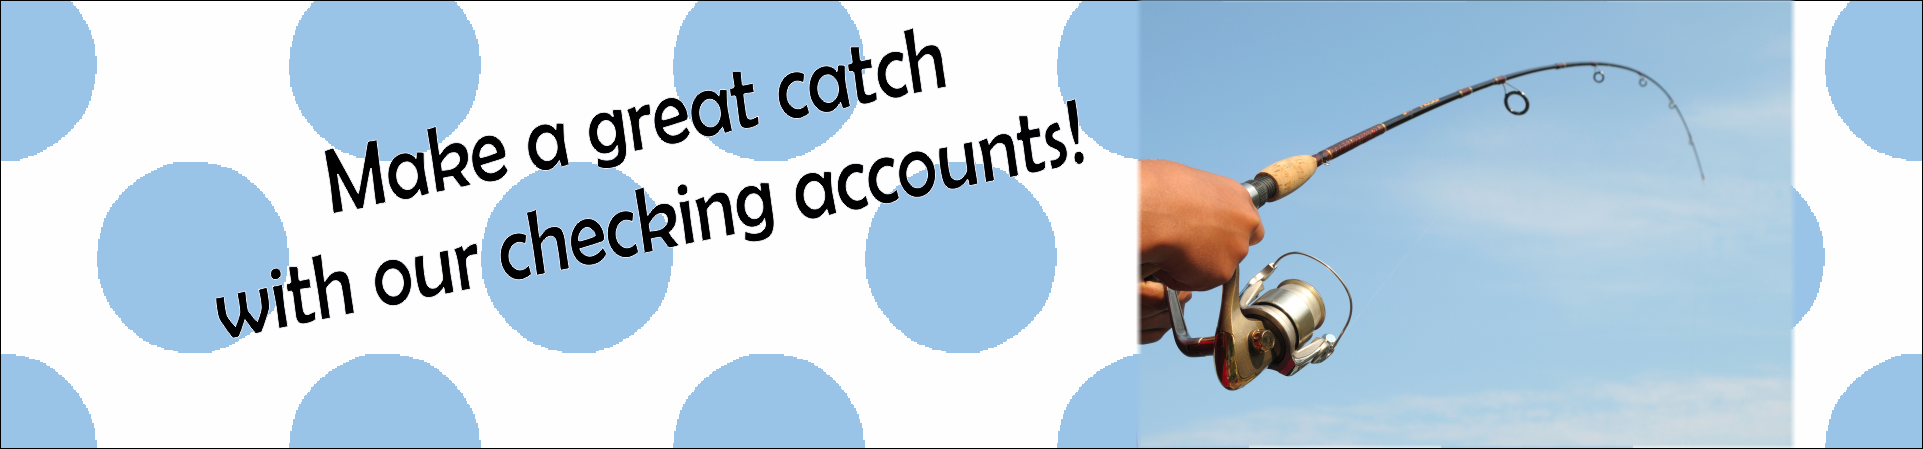 Make a great catch with our checking accounts